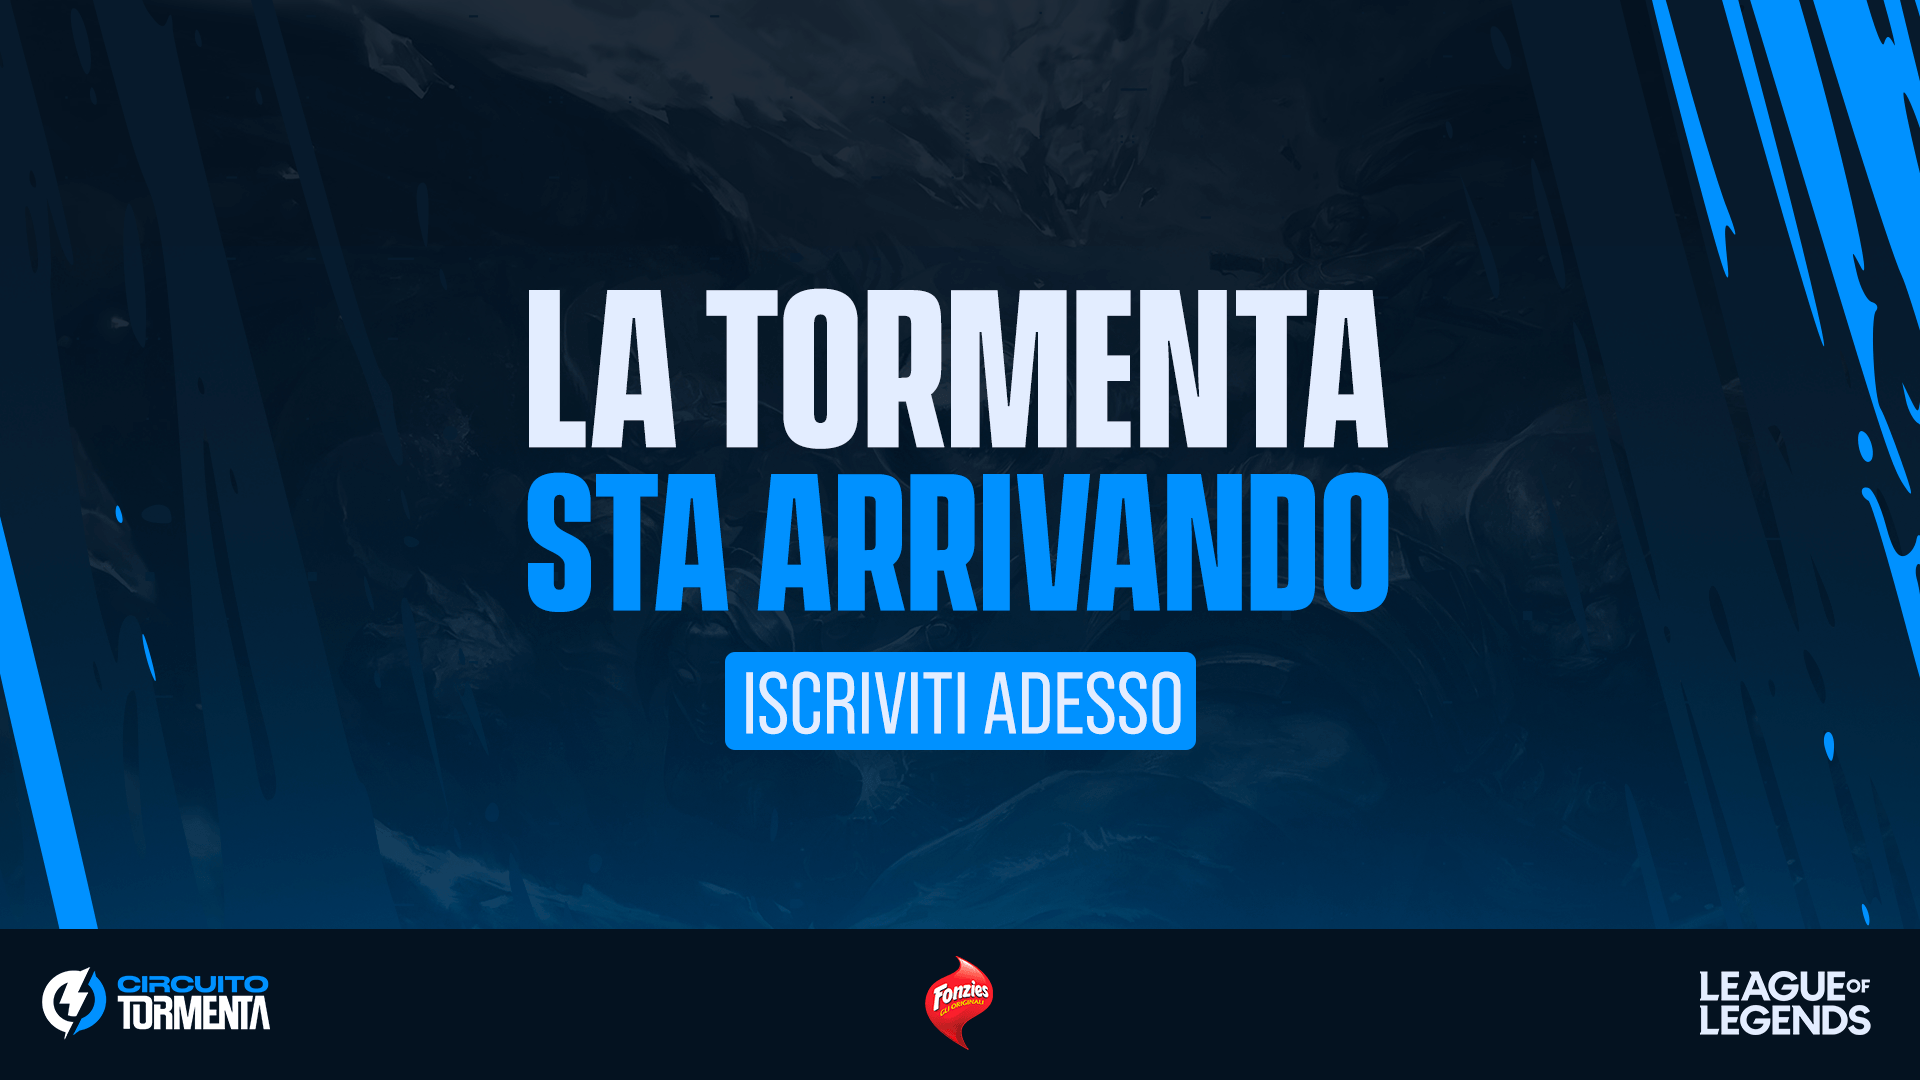 League of Legends: Arriva in italia il Circuito Tormenta